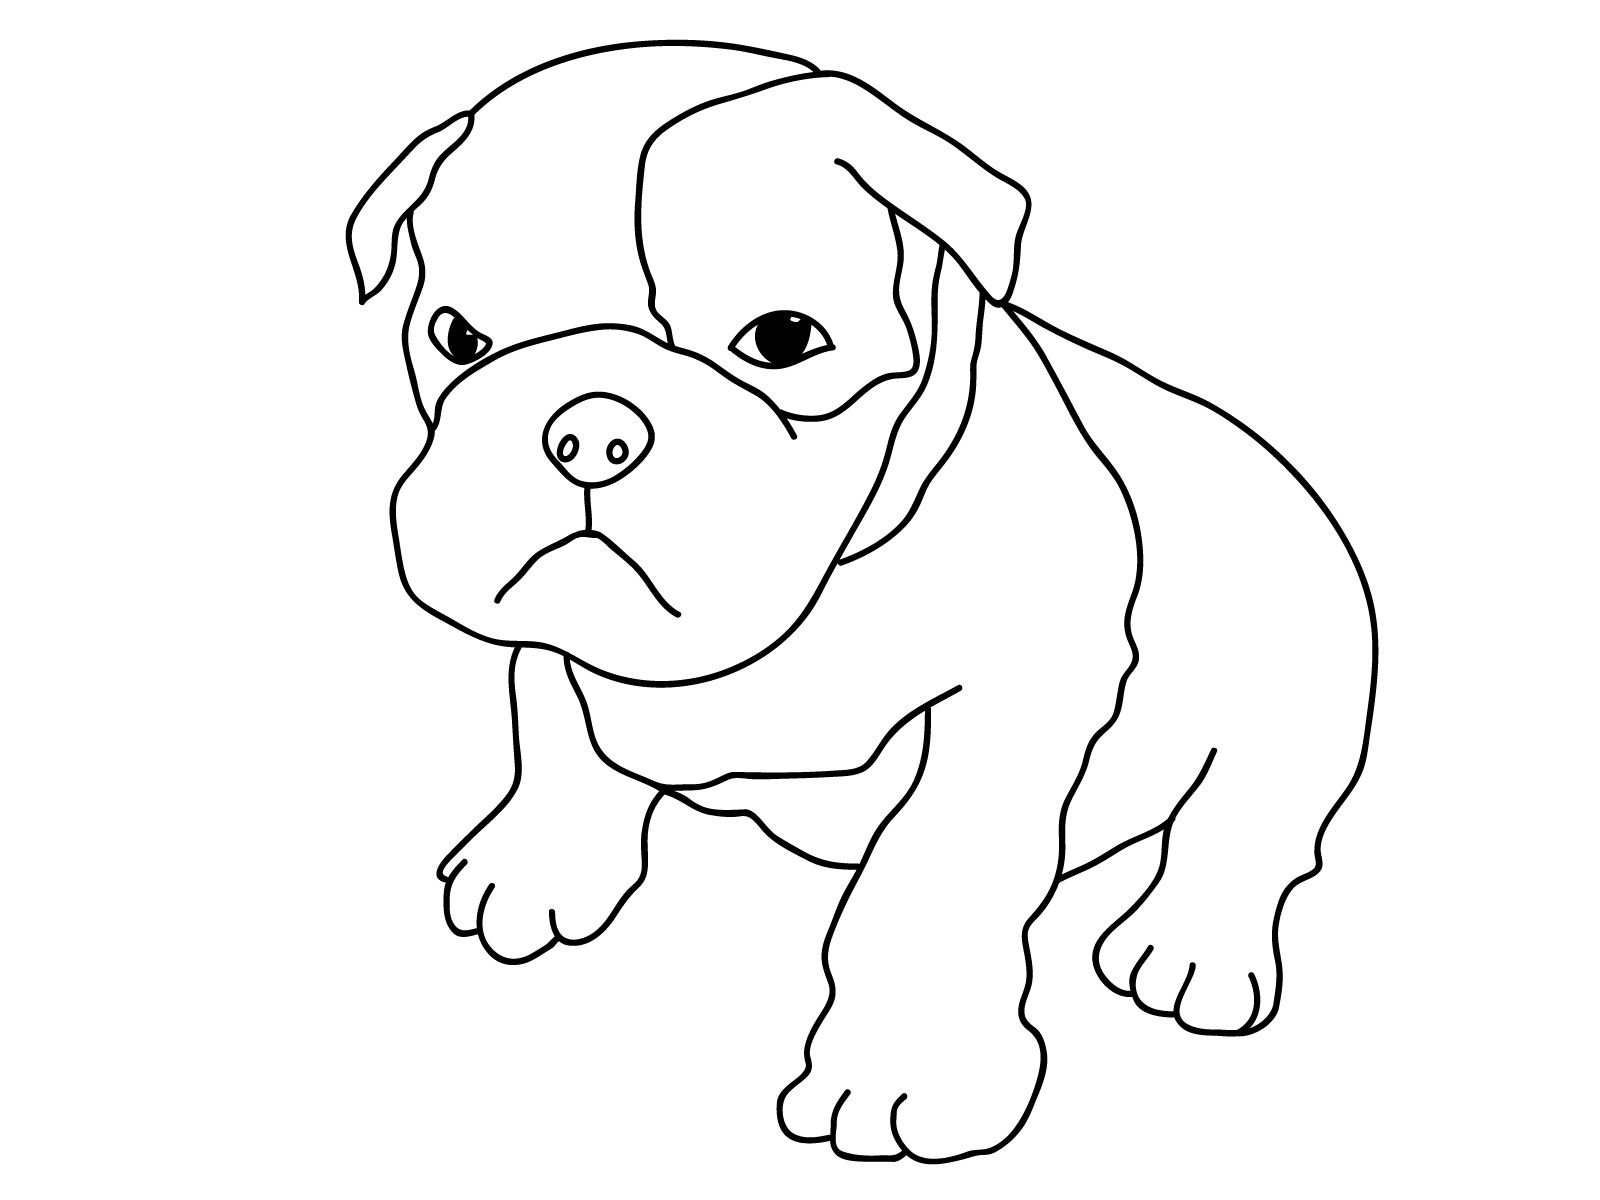 1600x1200 Coloring Pages To Print Dogs Fresh Free Printable Dog Coloring